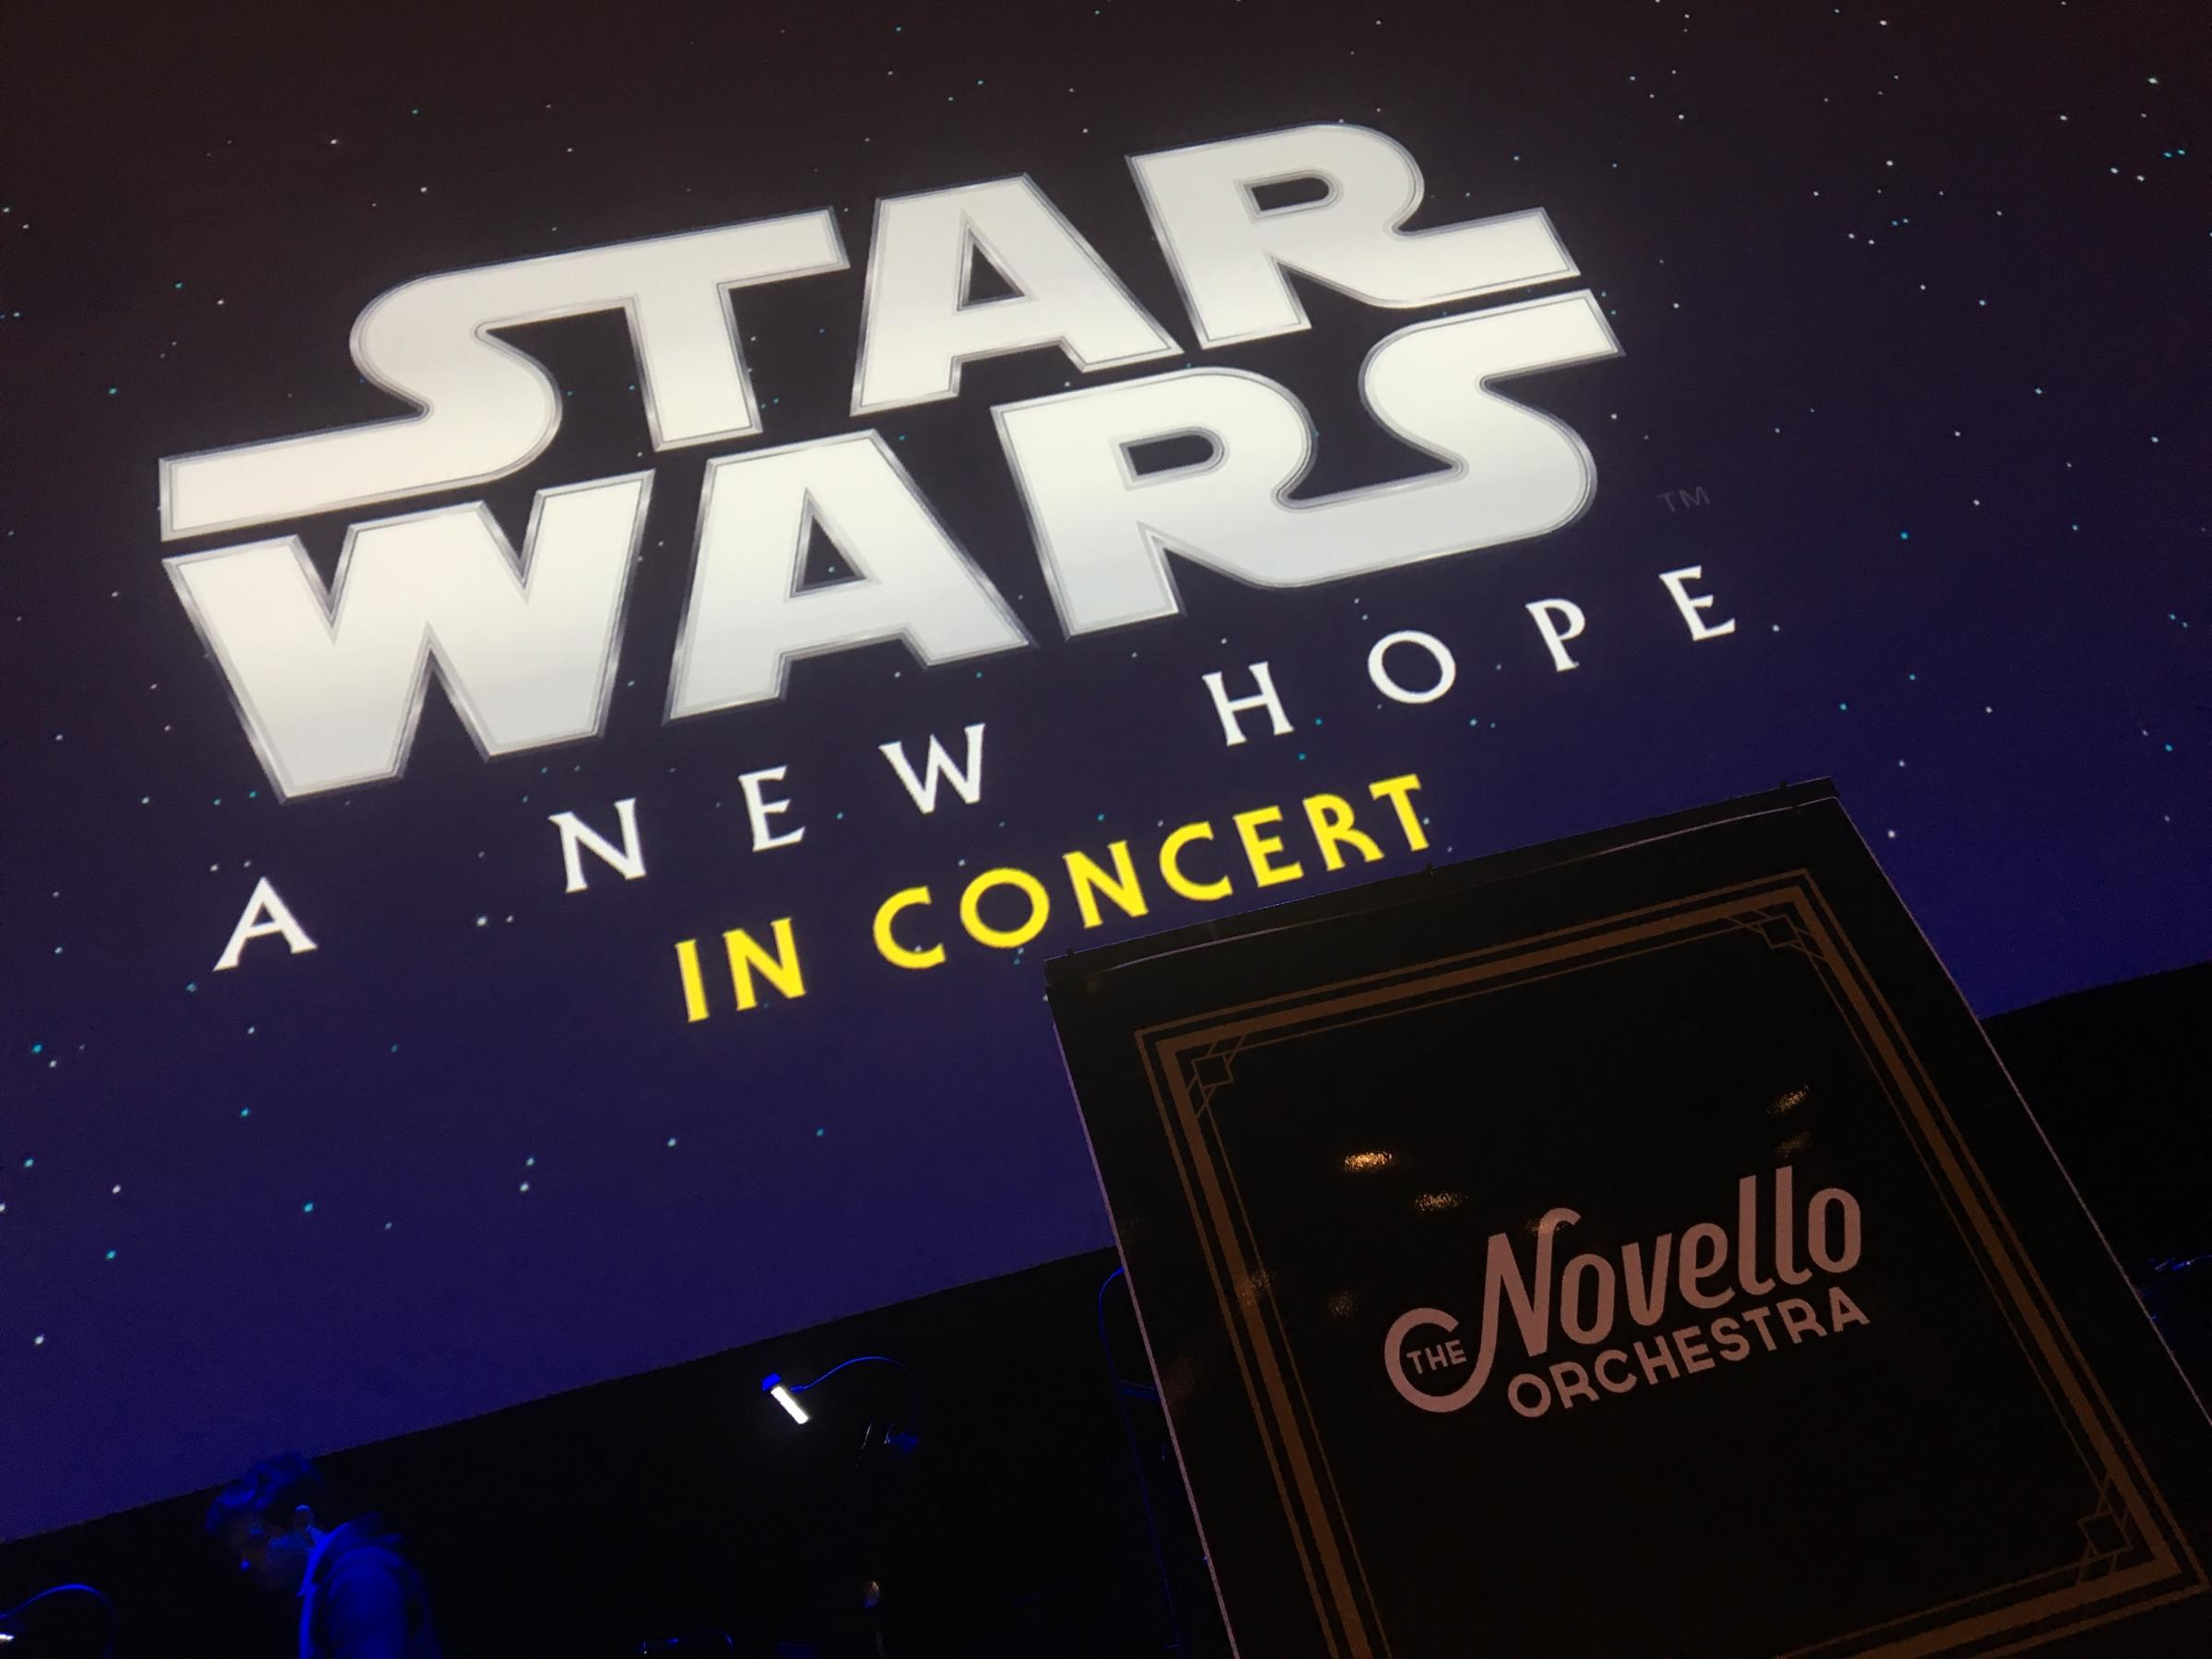 Review Star Wars Episode Iv A New Hope In Concert At The Bic Bournemouth Echo